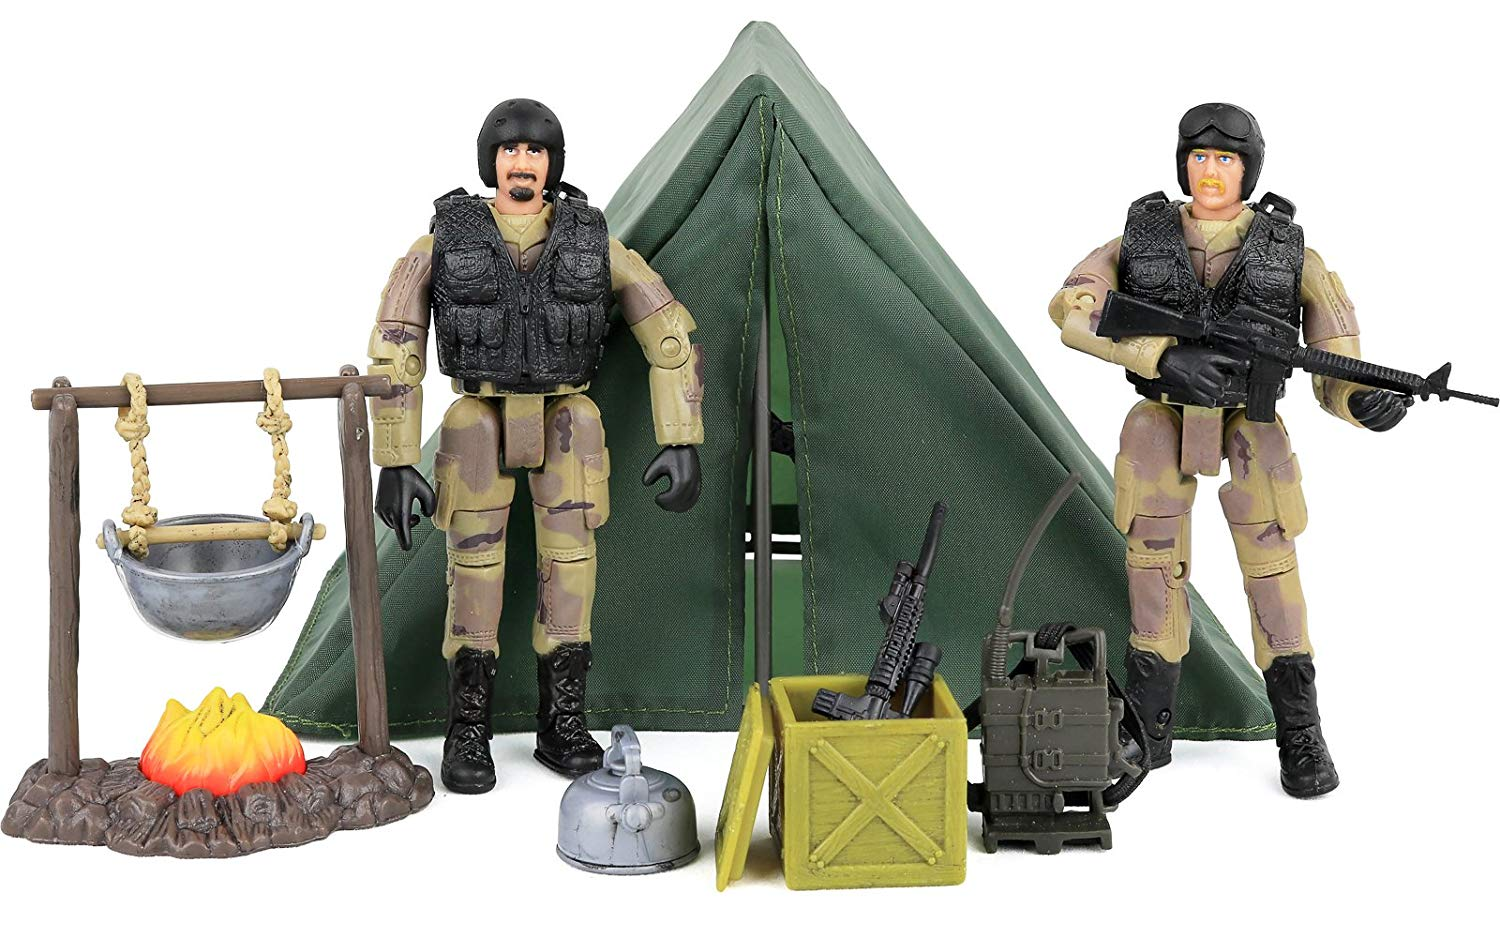 Weapon Novelty Military Toys For Children